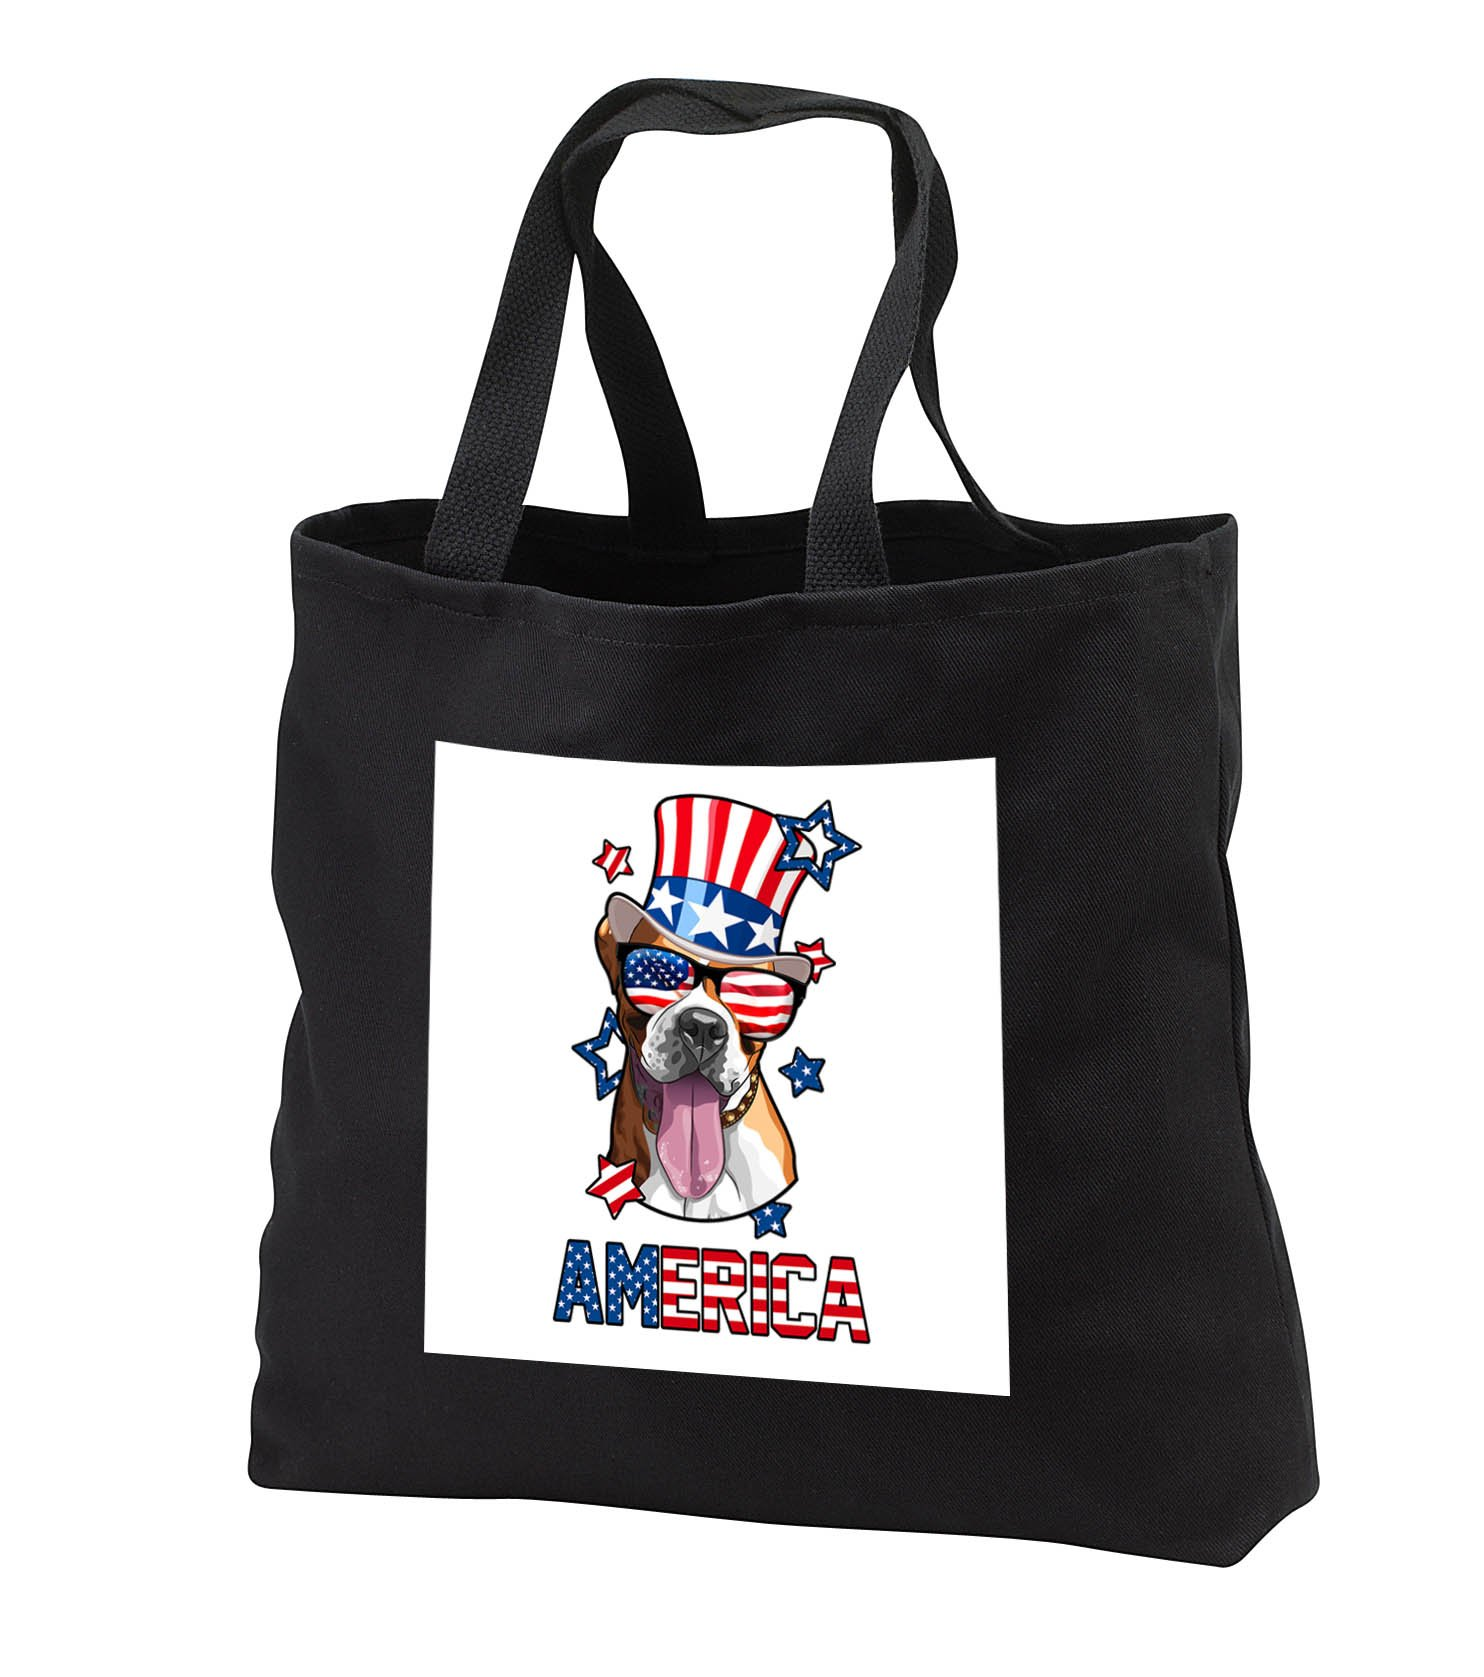 Patriotic American Dogs - Boxer Dog With American Flag Sunglasses and Tophat America - Tote Bags - Black Tote Bag JUMBO 20w x 15h x 5d (tb_284227_3)